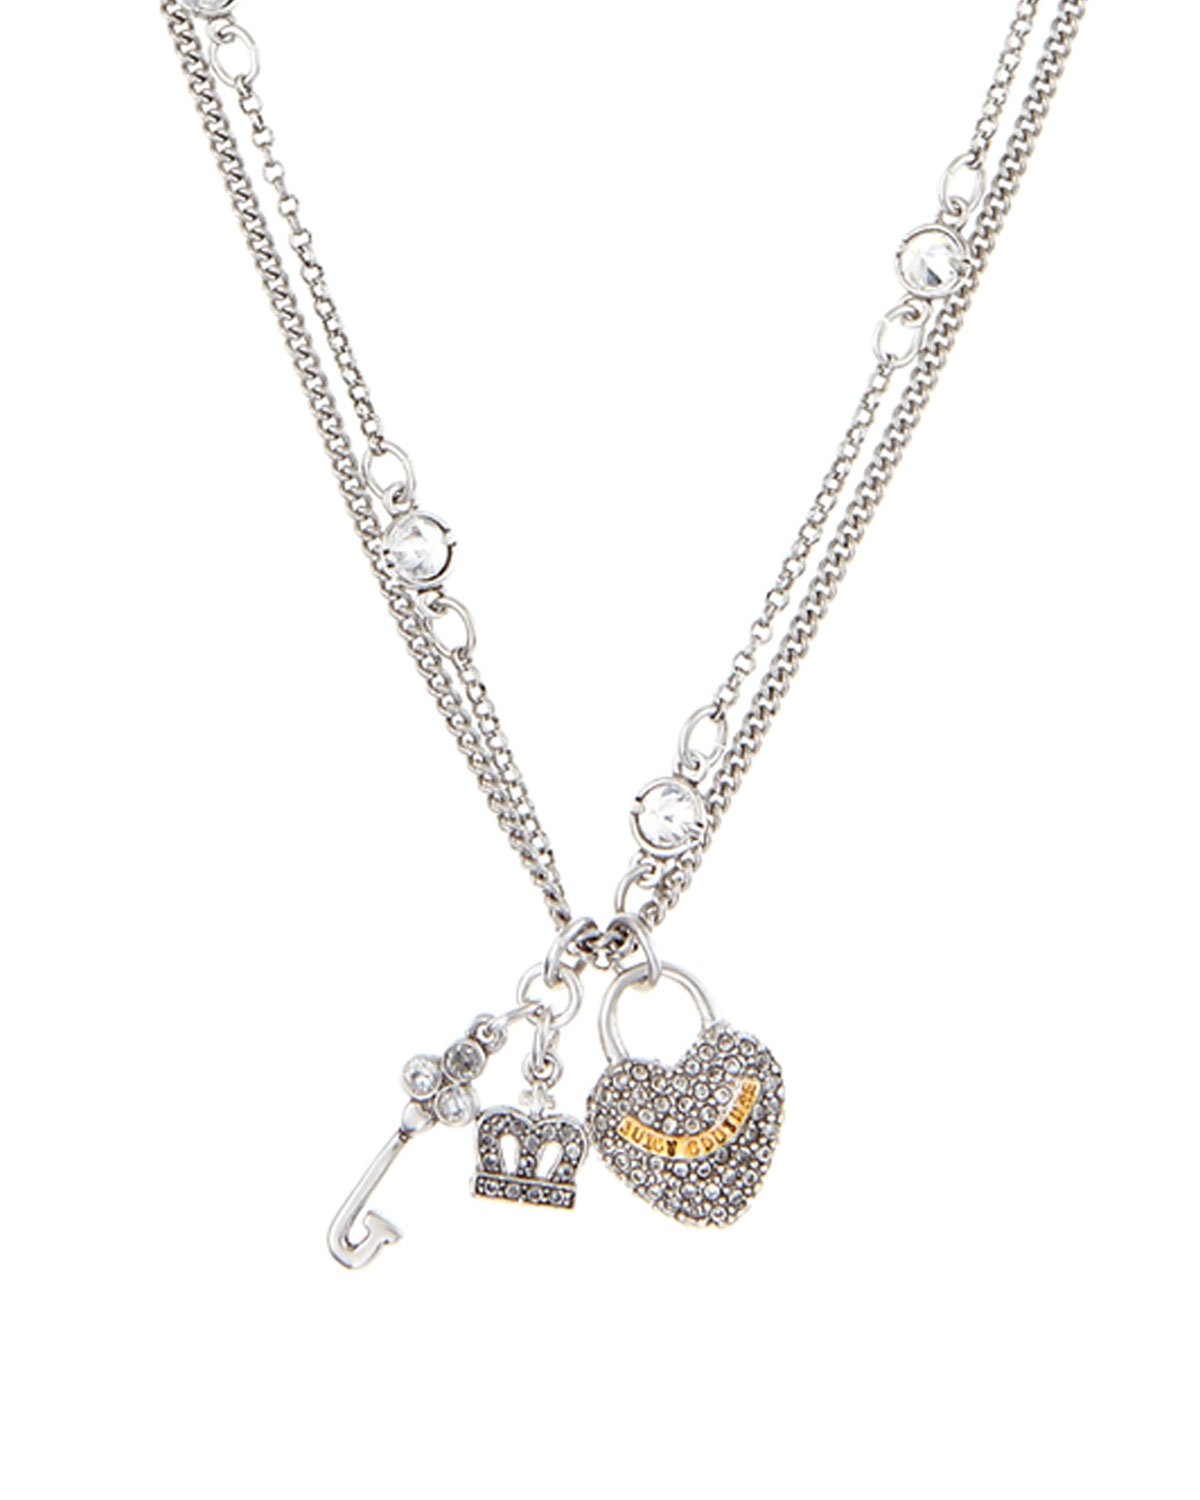 Juicy couture key to heart necklace in silver null lyst for Juicy couture jewelry necklace